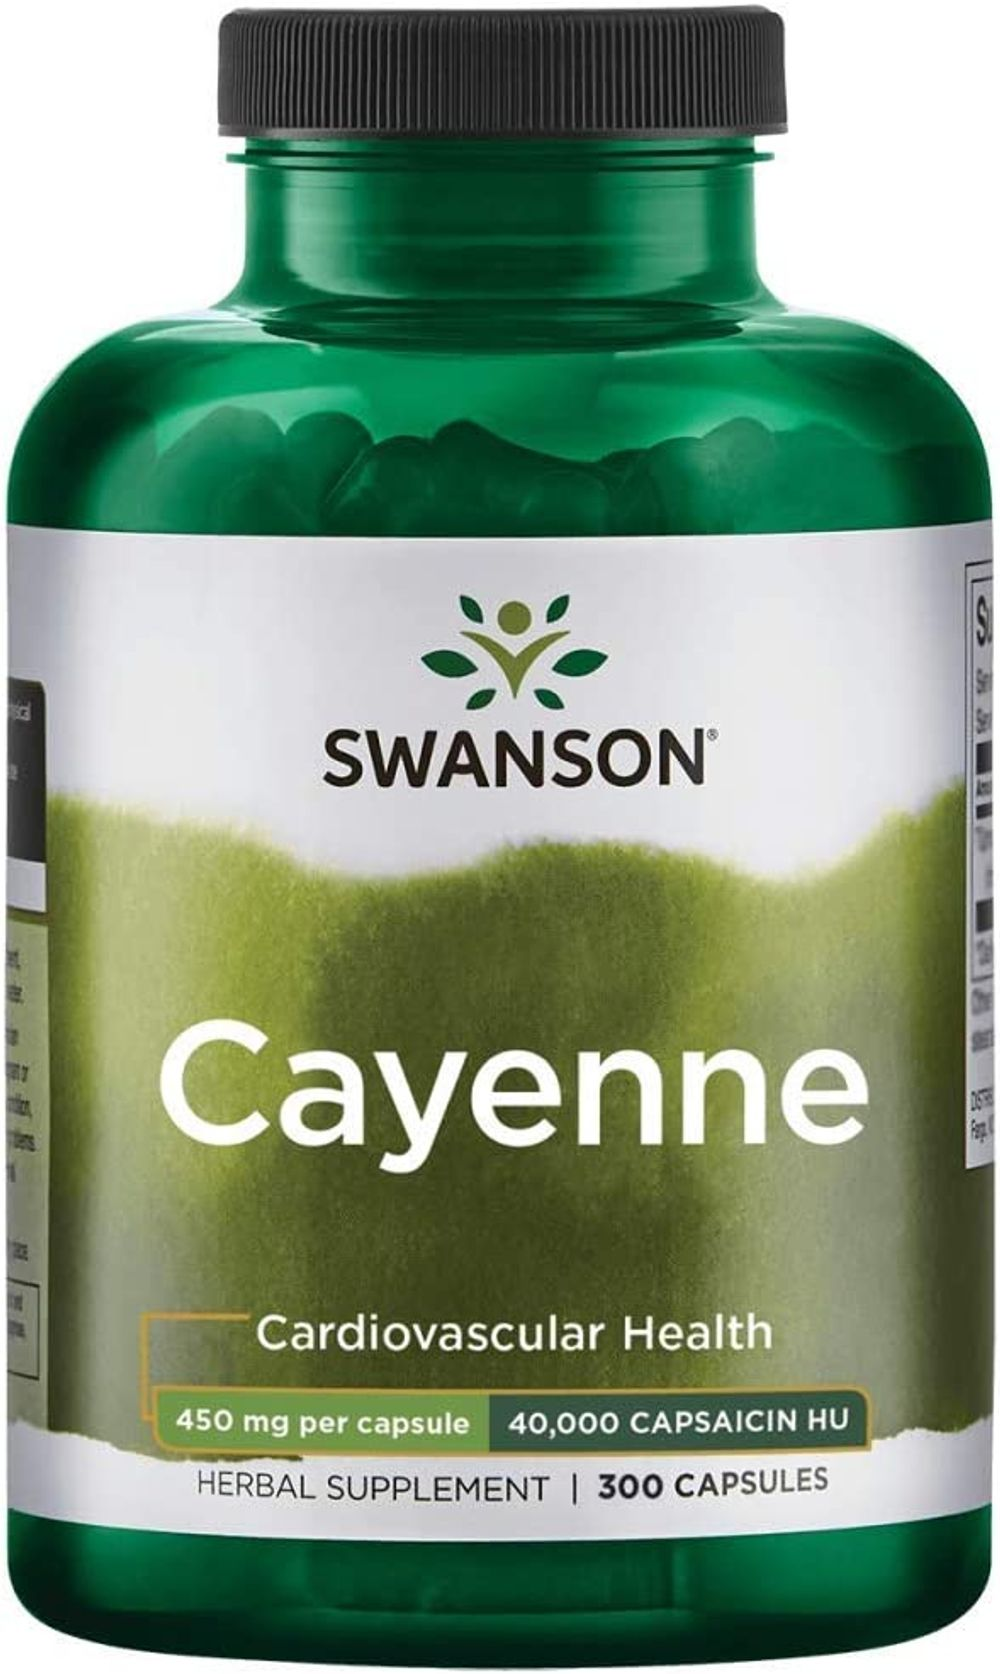 Swanson Cayenne 450 Milligrams 300 Capsules (4 Pack)